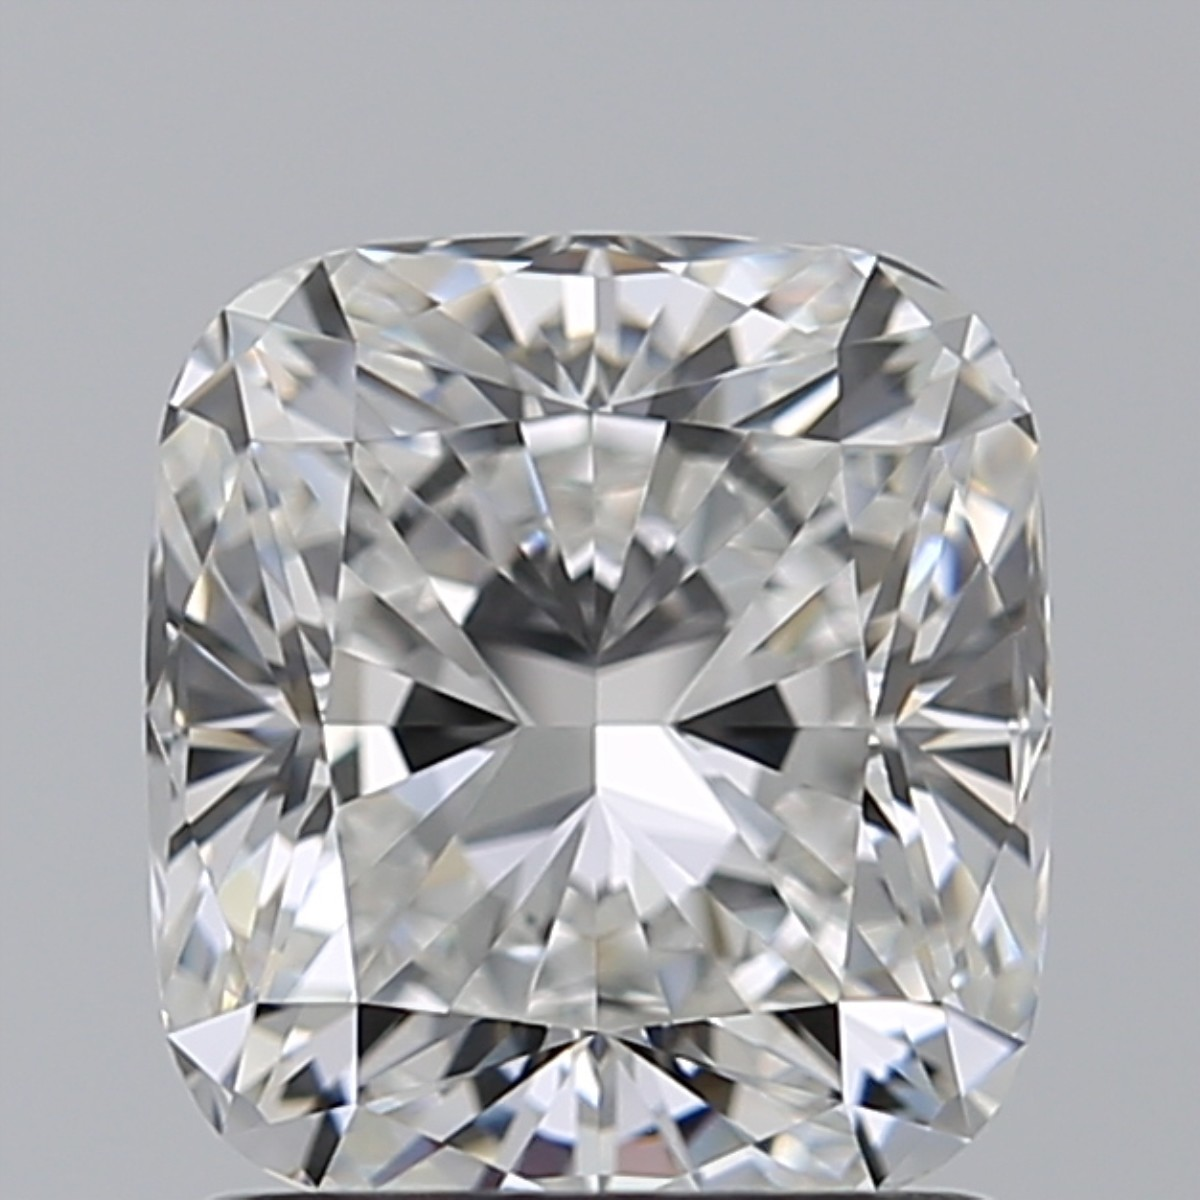 1.51 Carat Cushion Brilliant Diamond (F/IF)